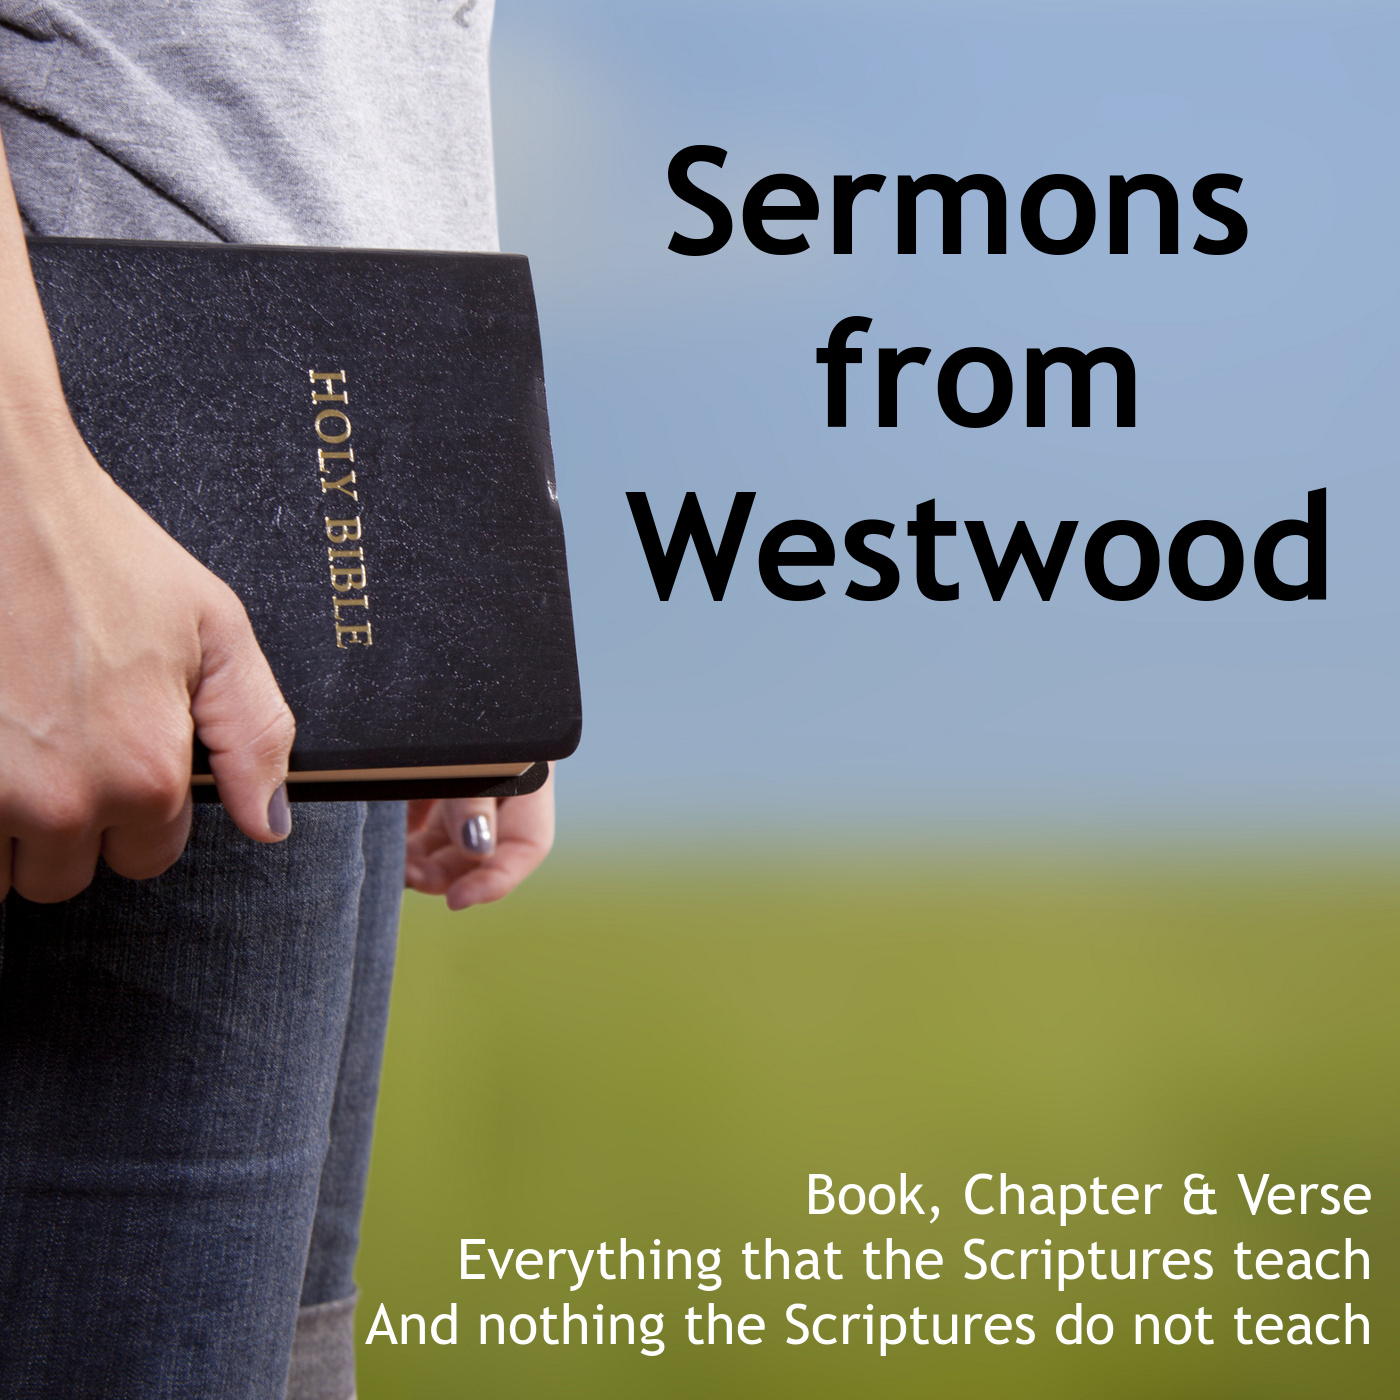 Sermons from Westwood